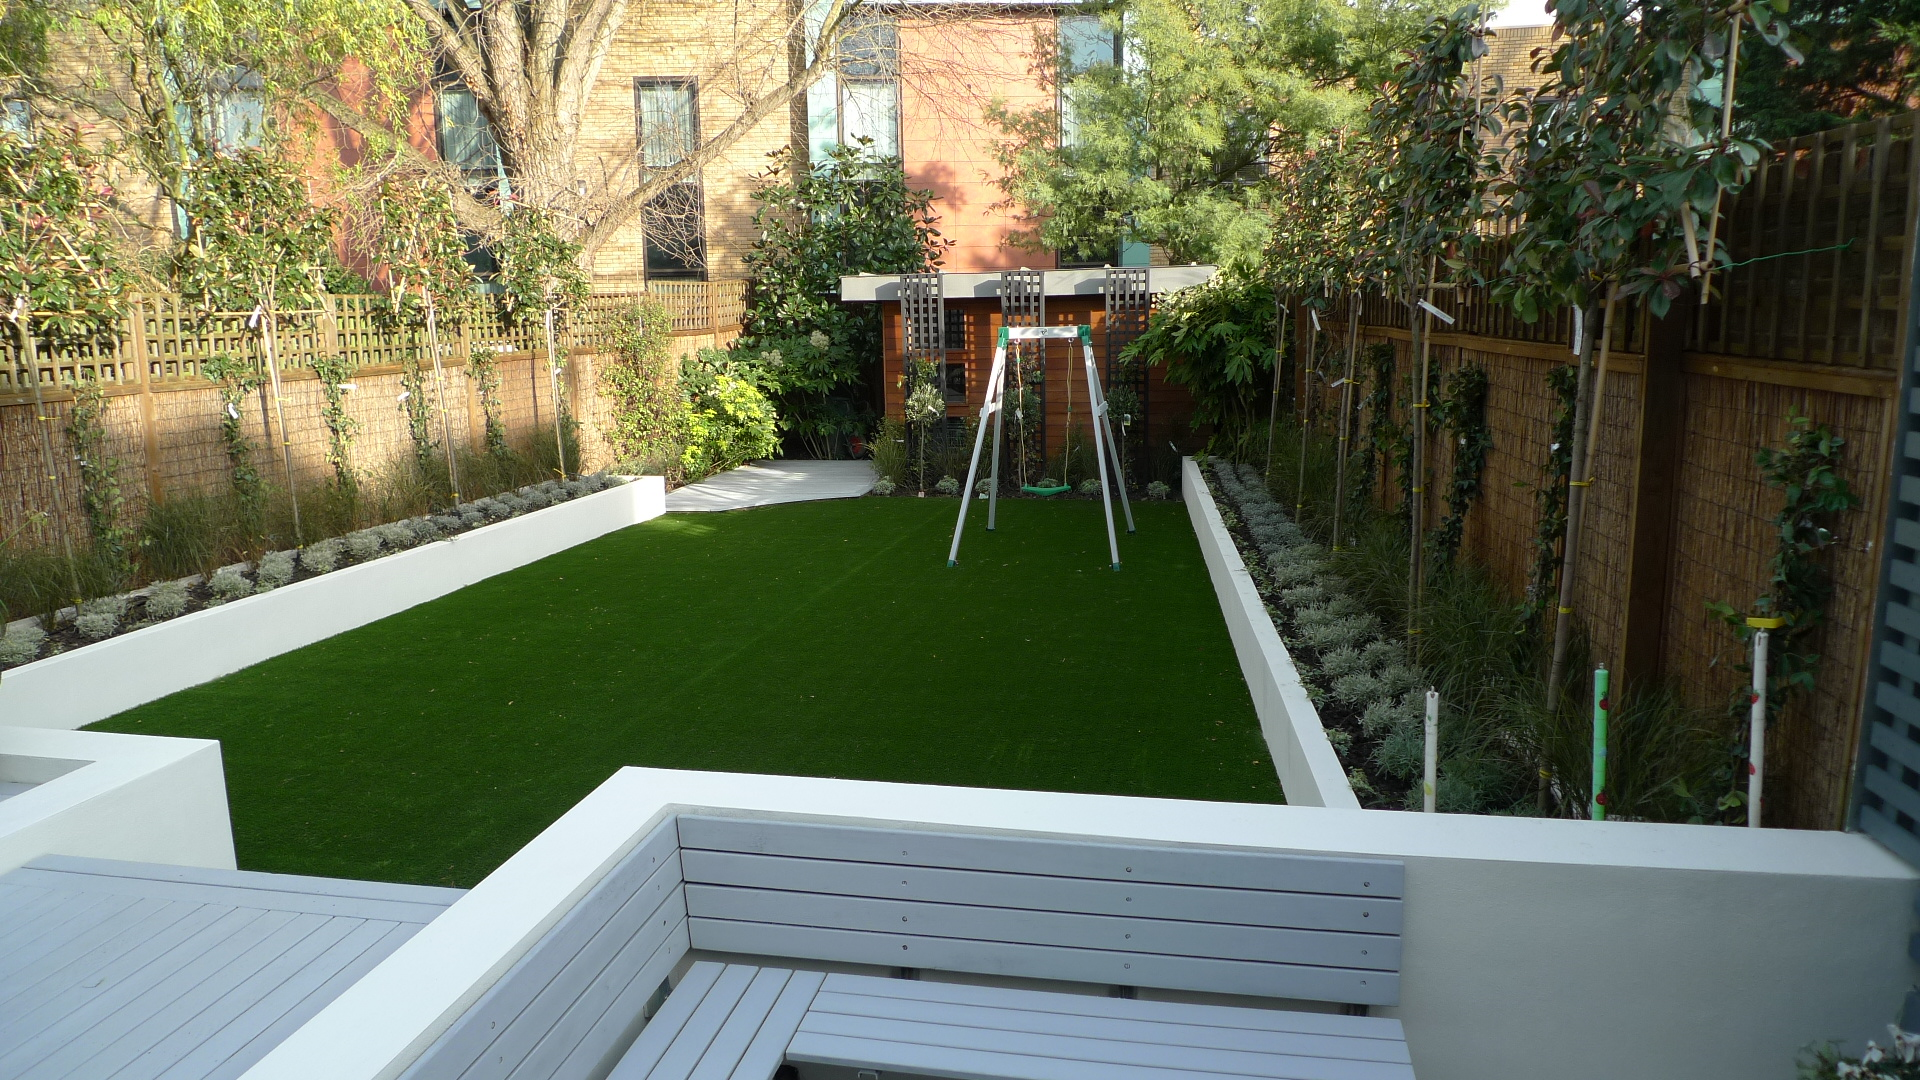 Modern garden design ideas london london garden design for Contemporary backyard landscaping ideas